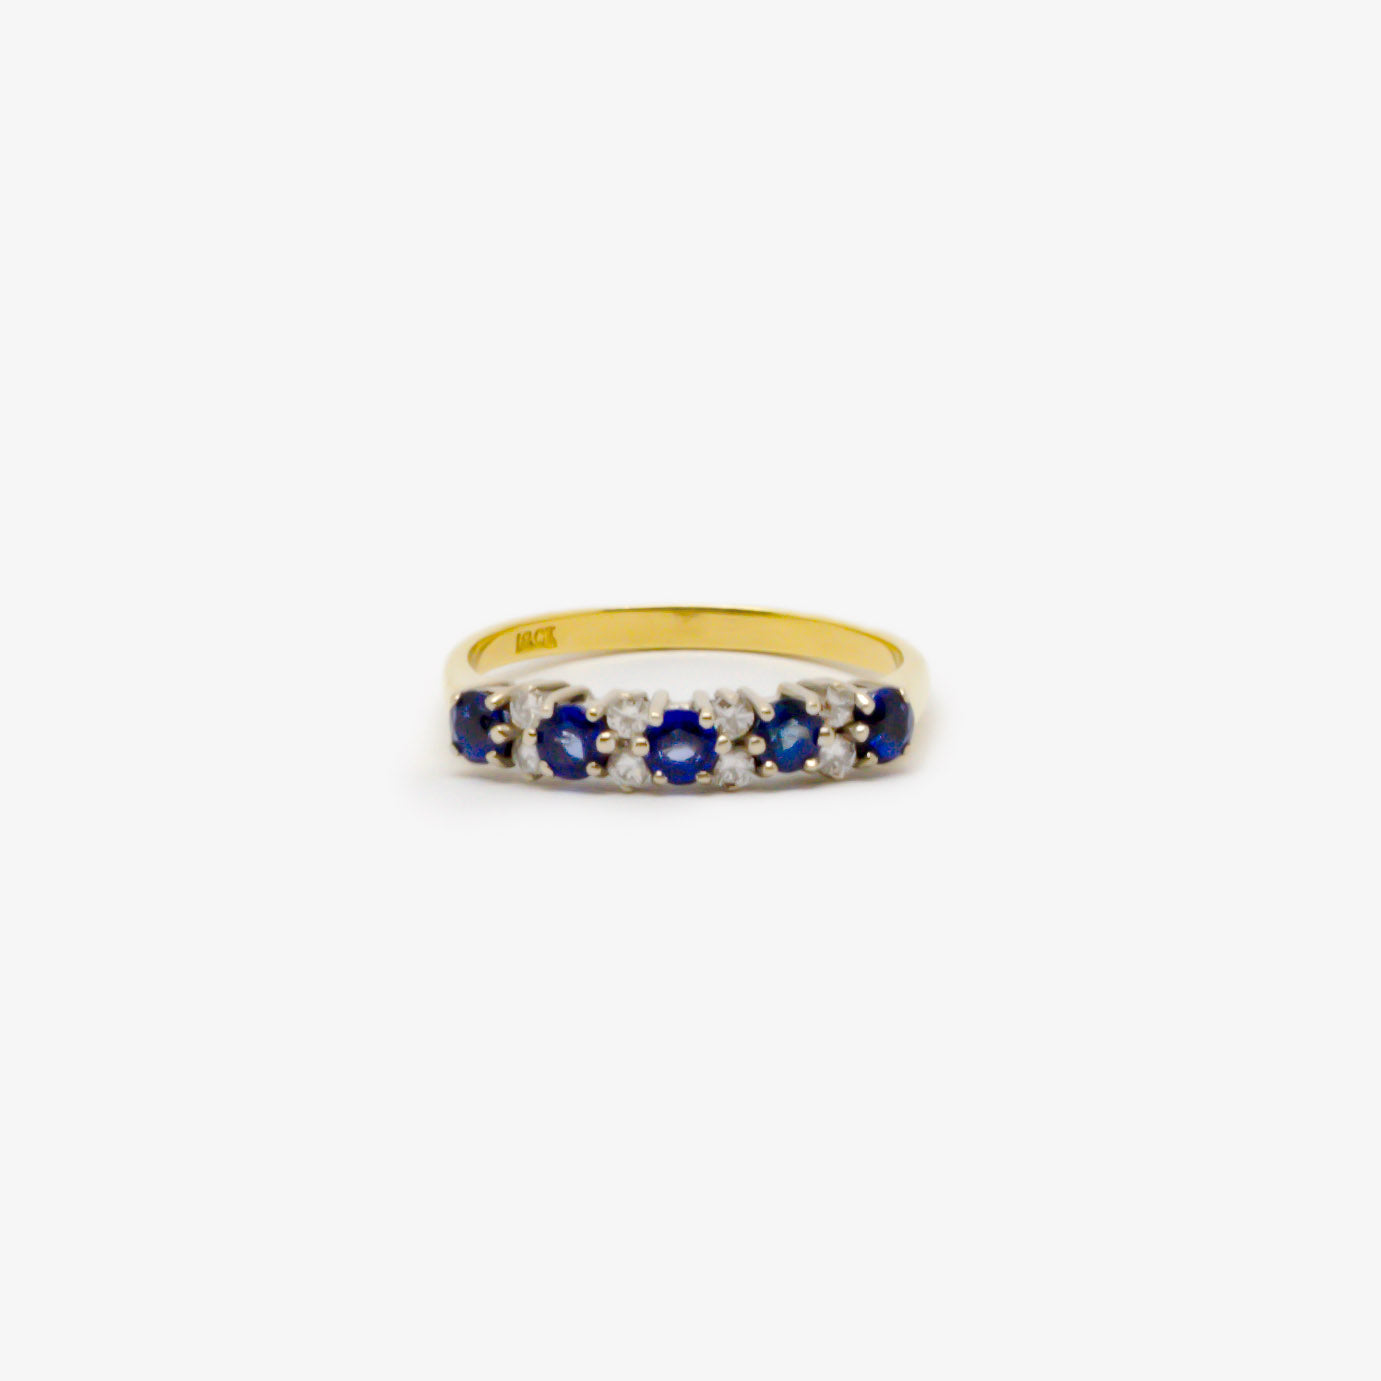 Jordans Jewellers 18ct yellow gold antique thirteen stone sapphire and diamond ring